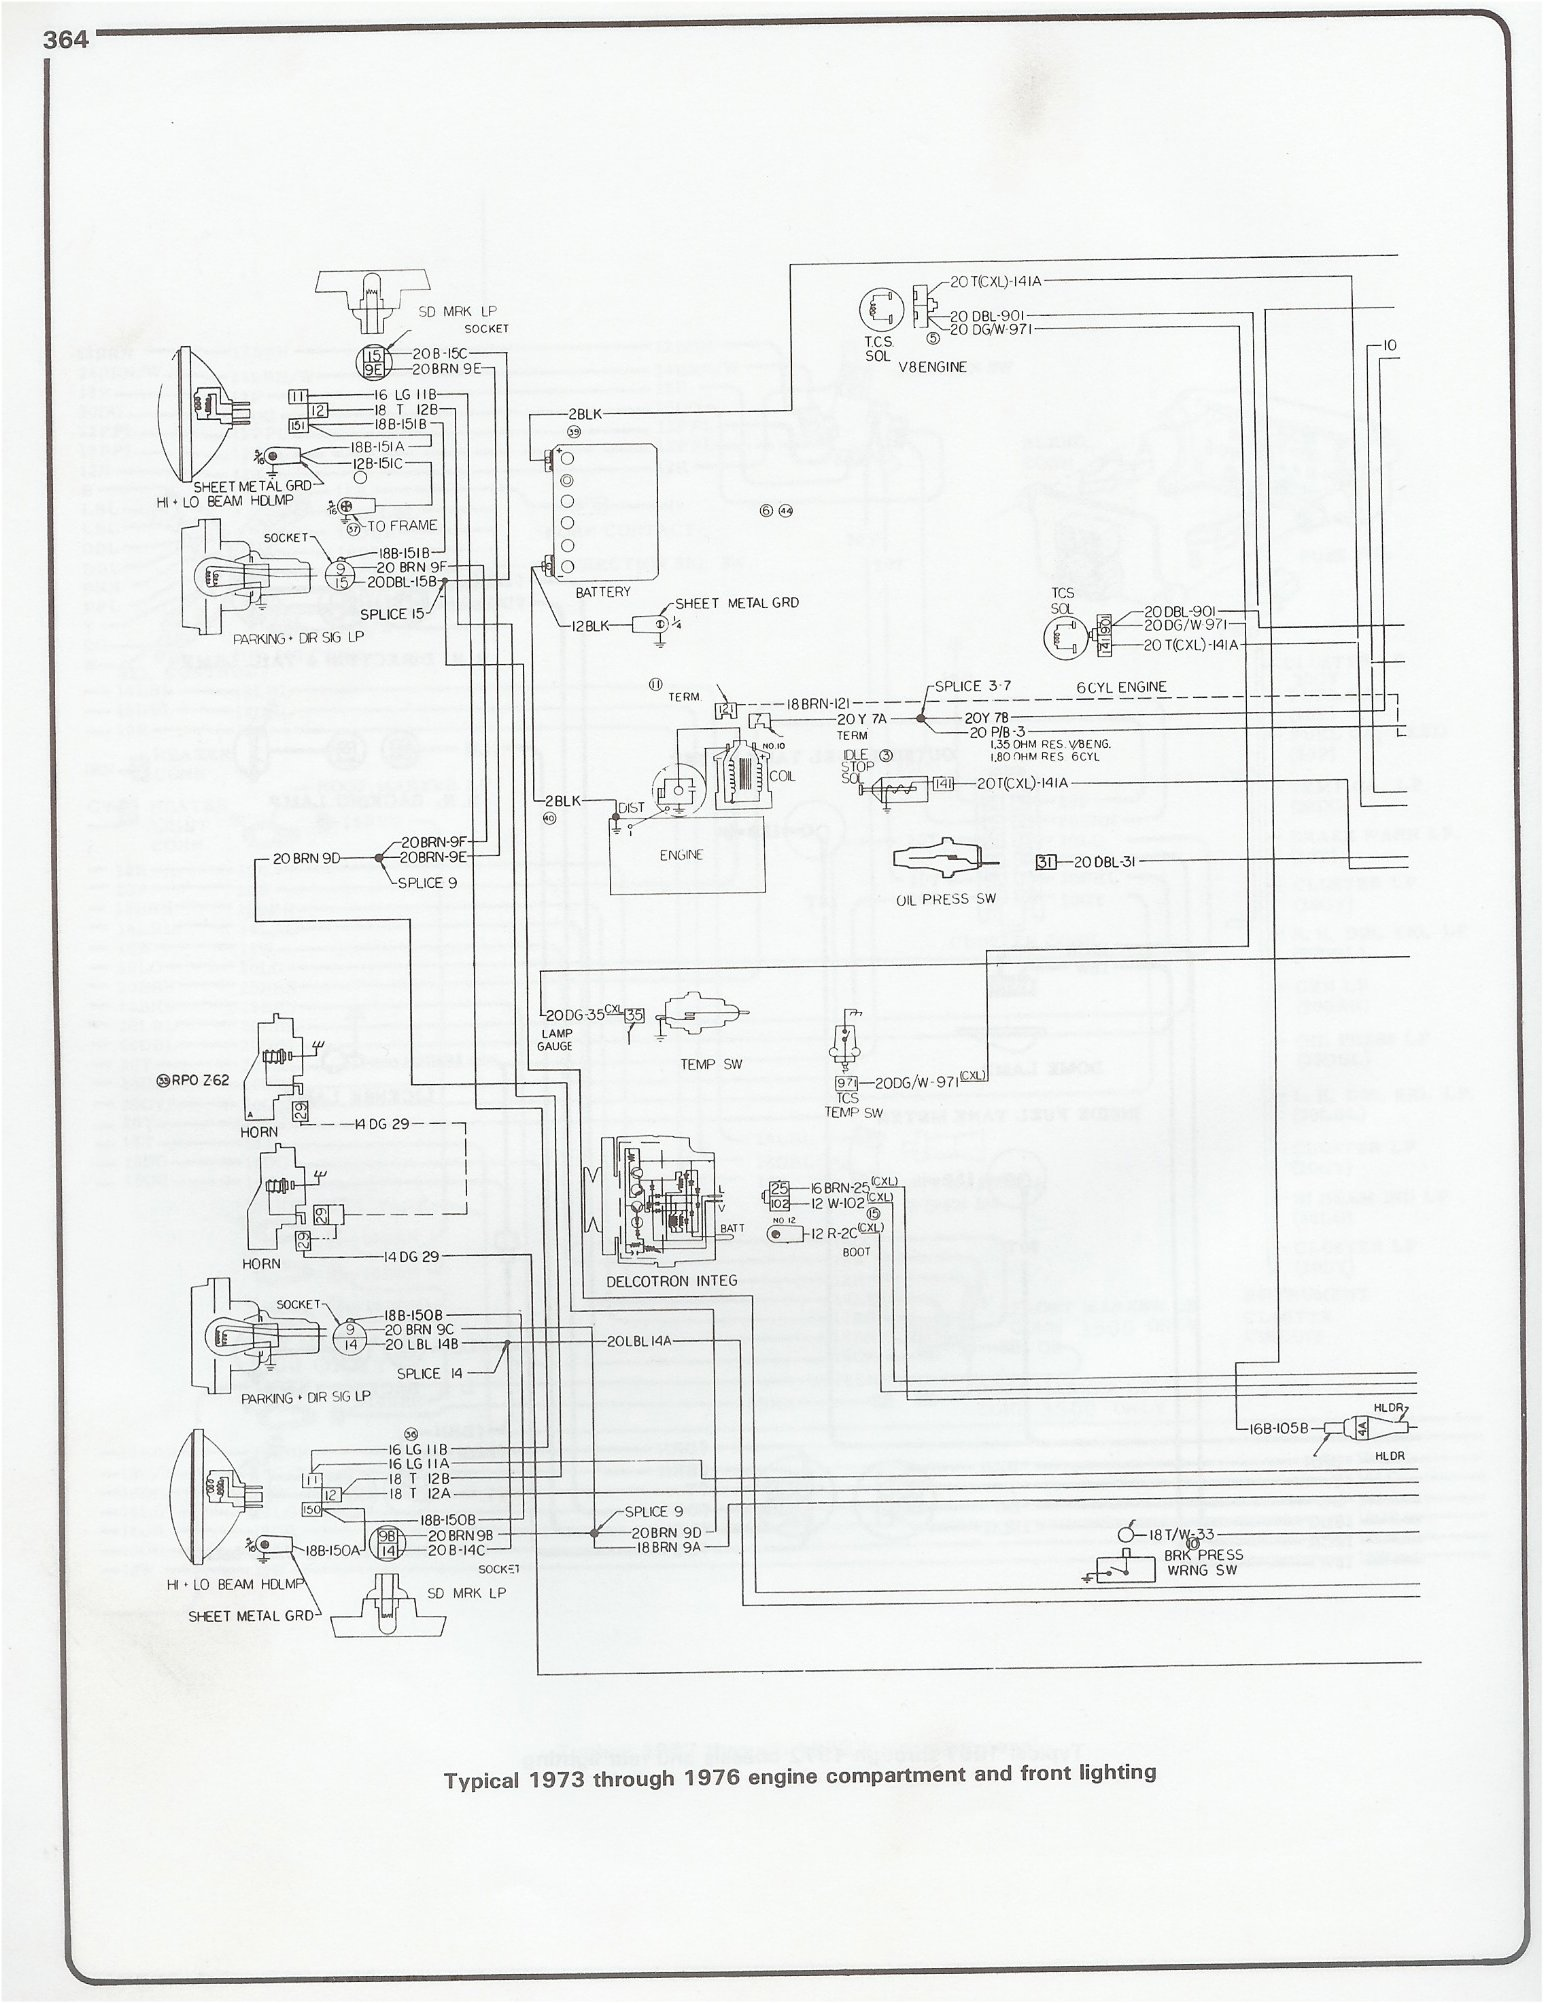 73 76_eng_frt_light complete 73 87 wiring diagrams Jeep Power Door Lock Wiring Diagram at crackthecode.co